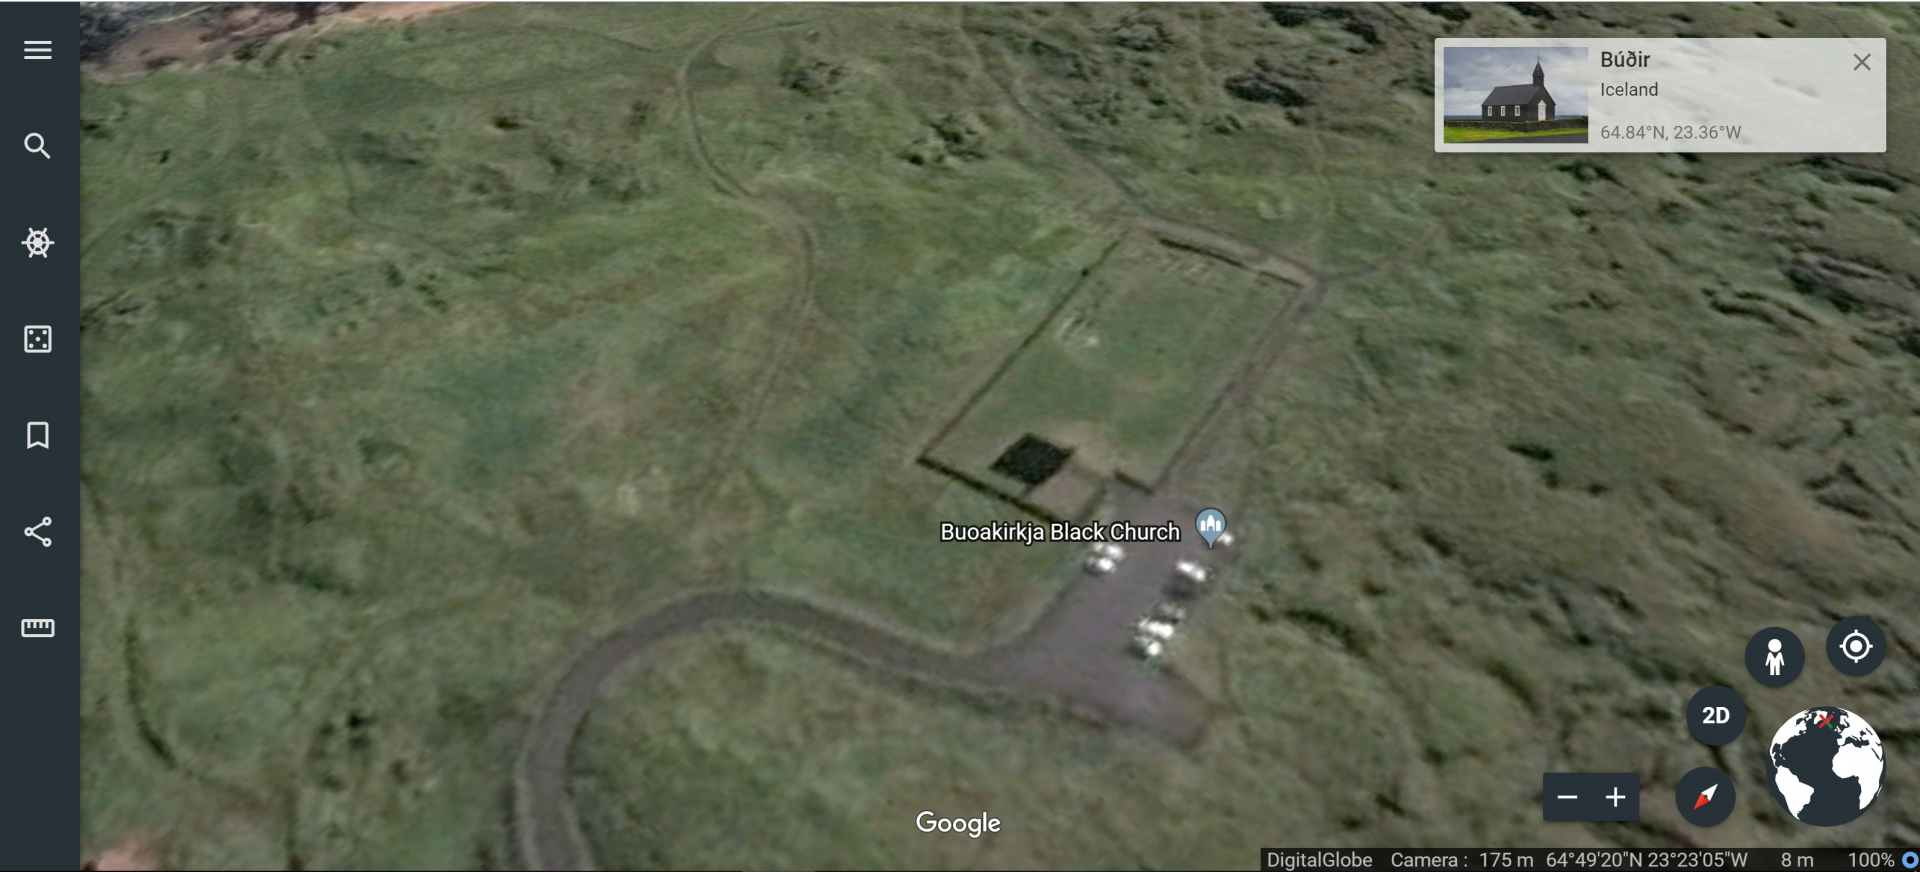 Google Earth of Budir